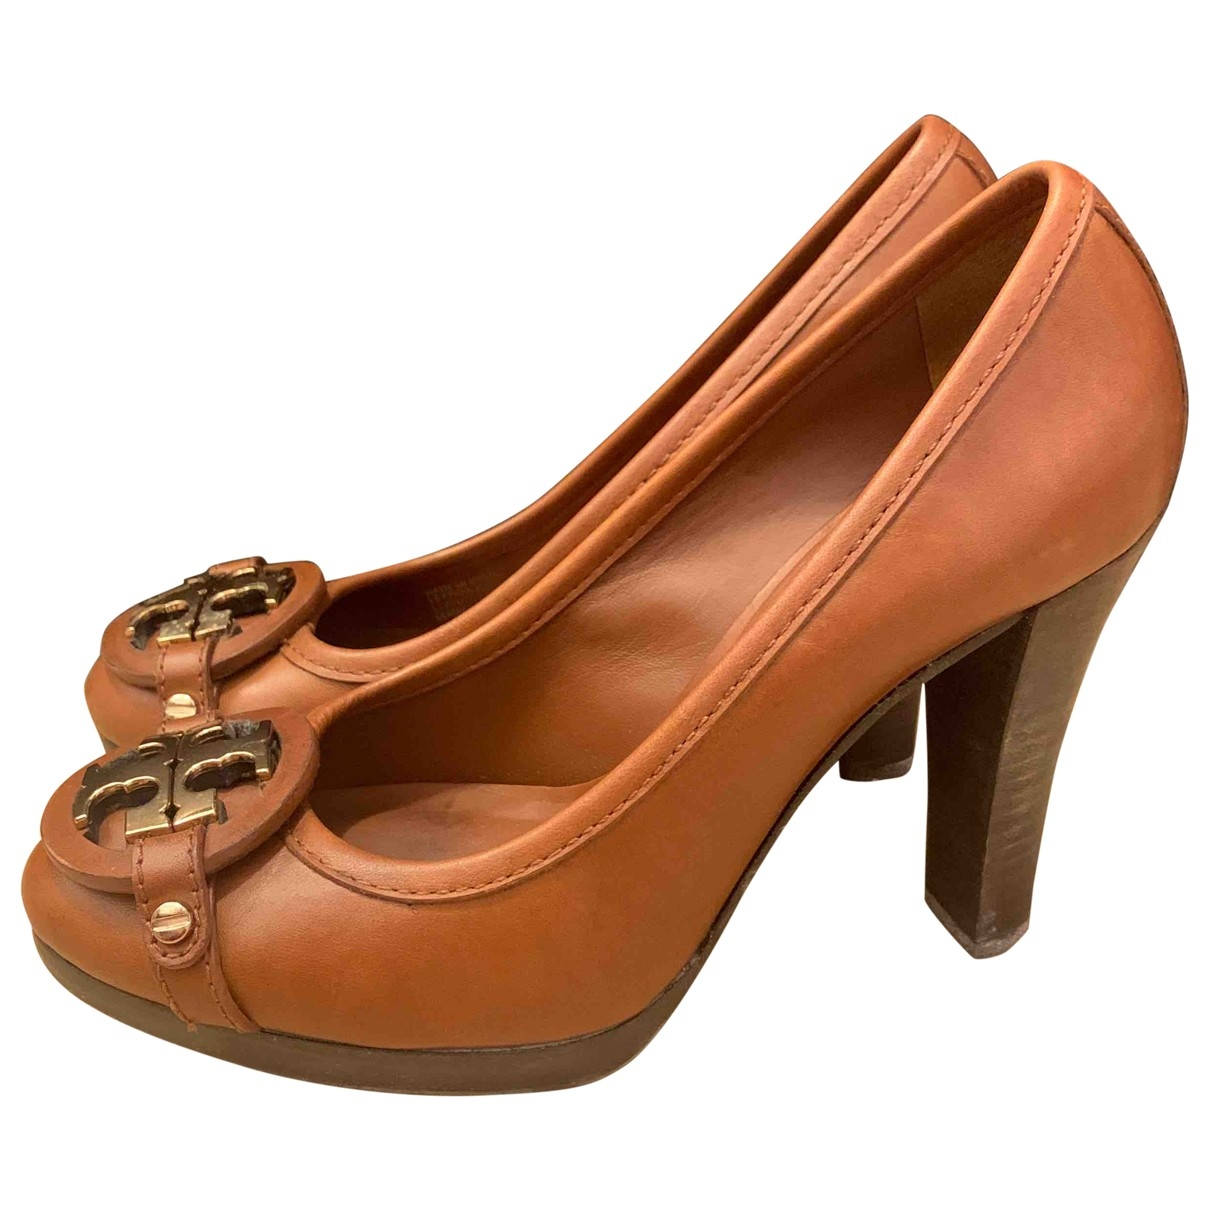 Tory Burch \N Brown Leather Heels for Women 5.5 US